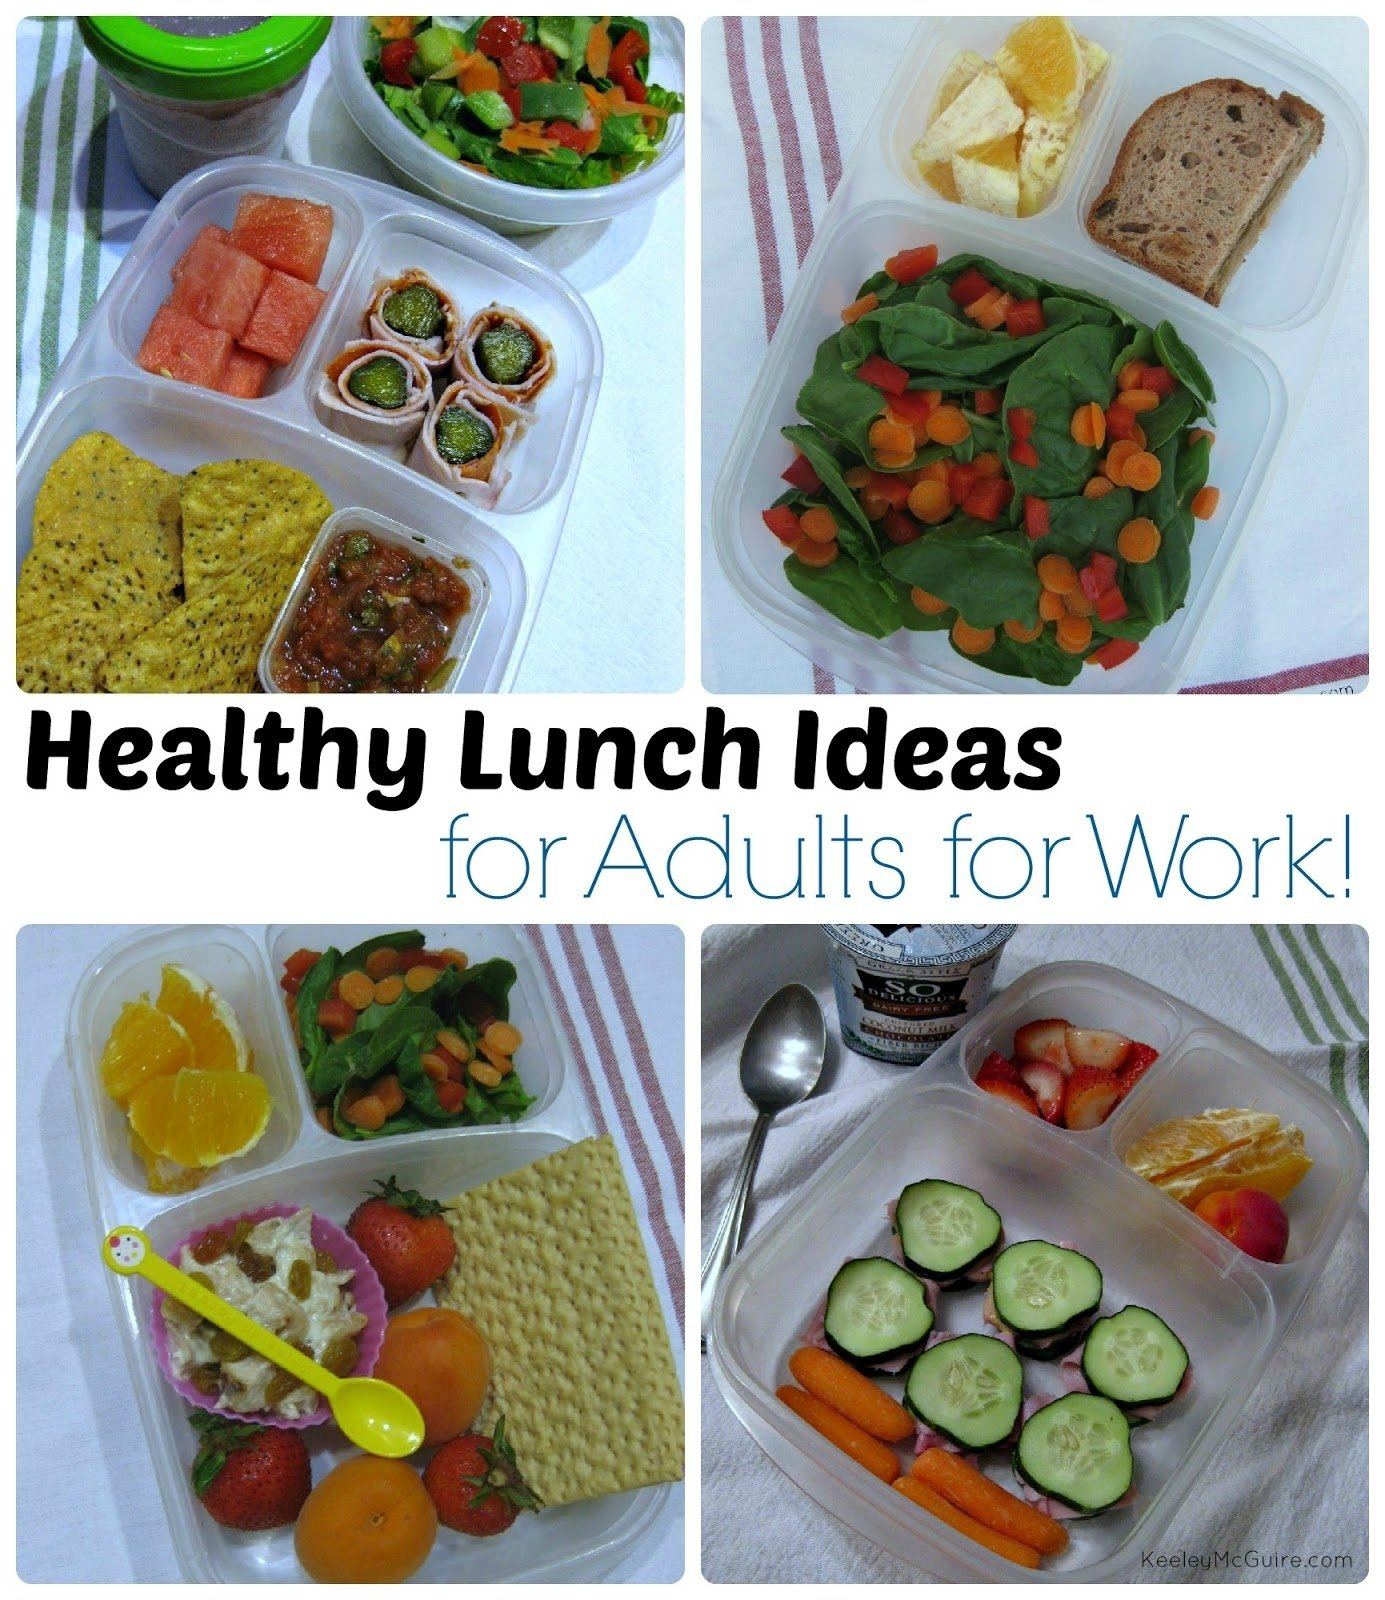 10 Beautiful Quick Healthy Lunch Ideas For Work gluten free allergy friendly lunch made easy healthy adult work 3 2020